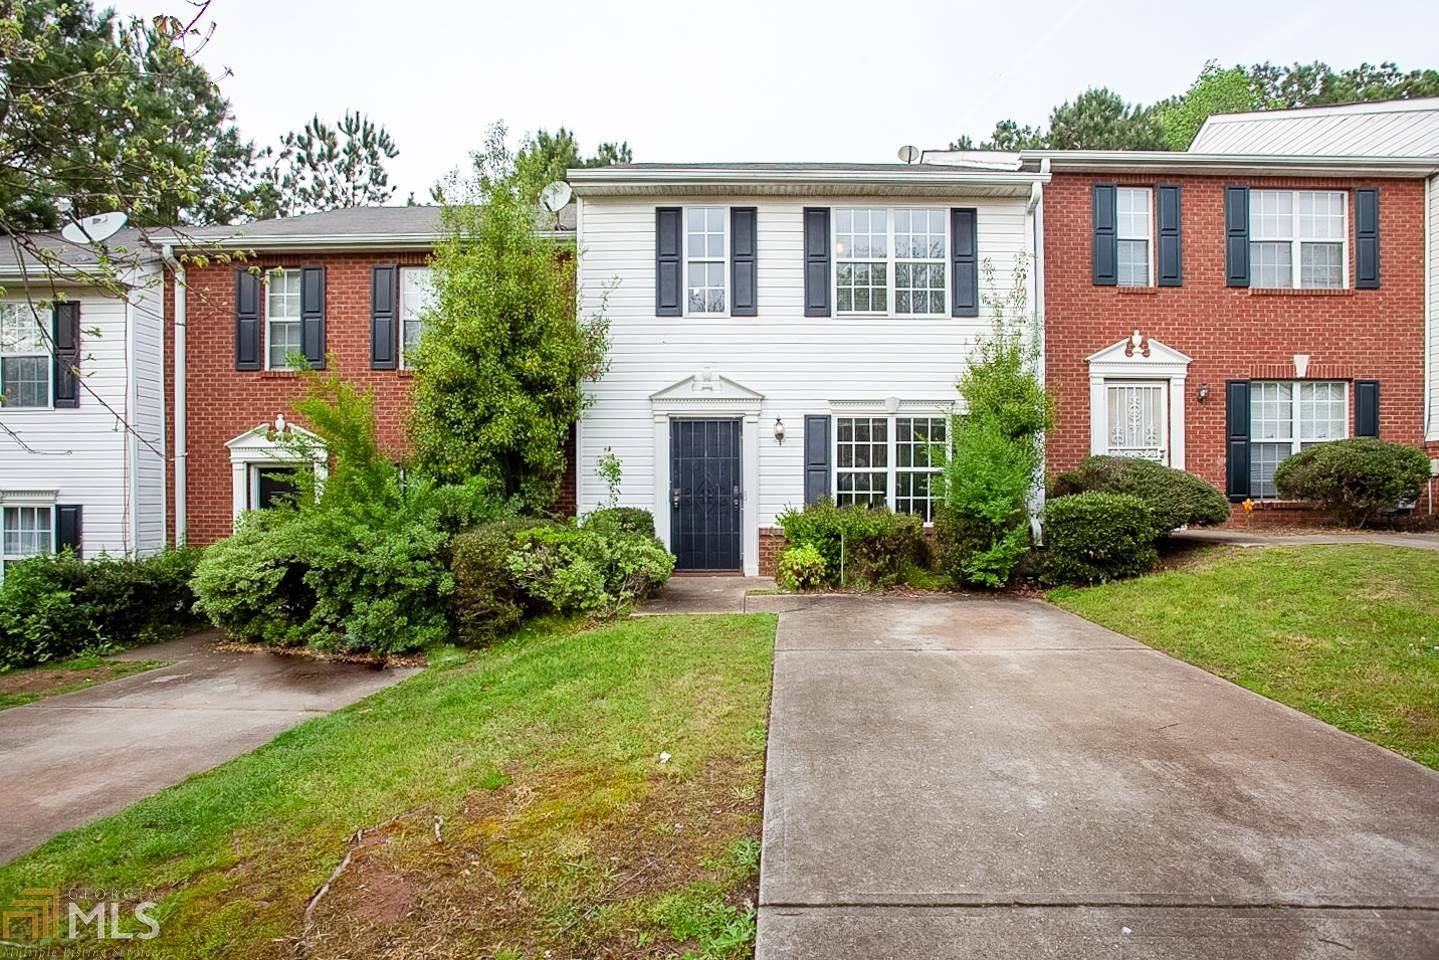 1375 Hollenbeck, Riverdale, GA 30296 - #: 8959365